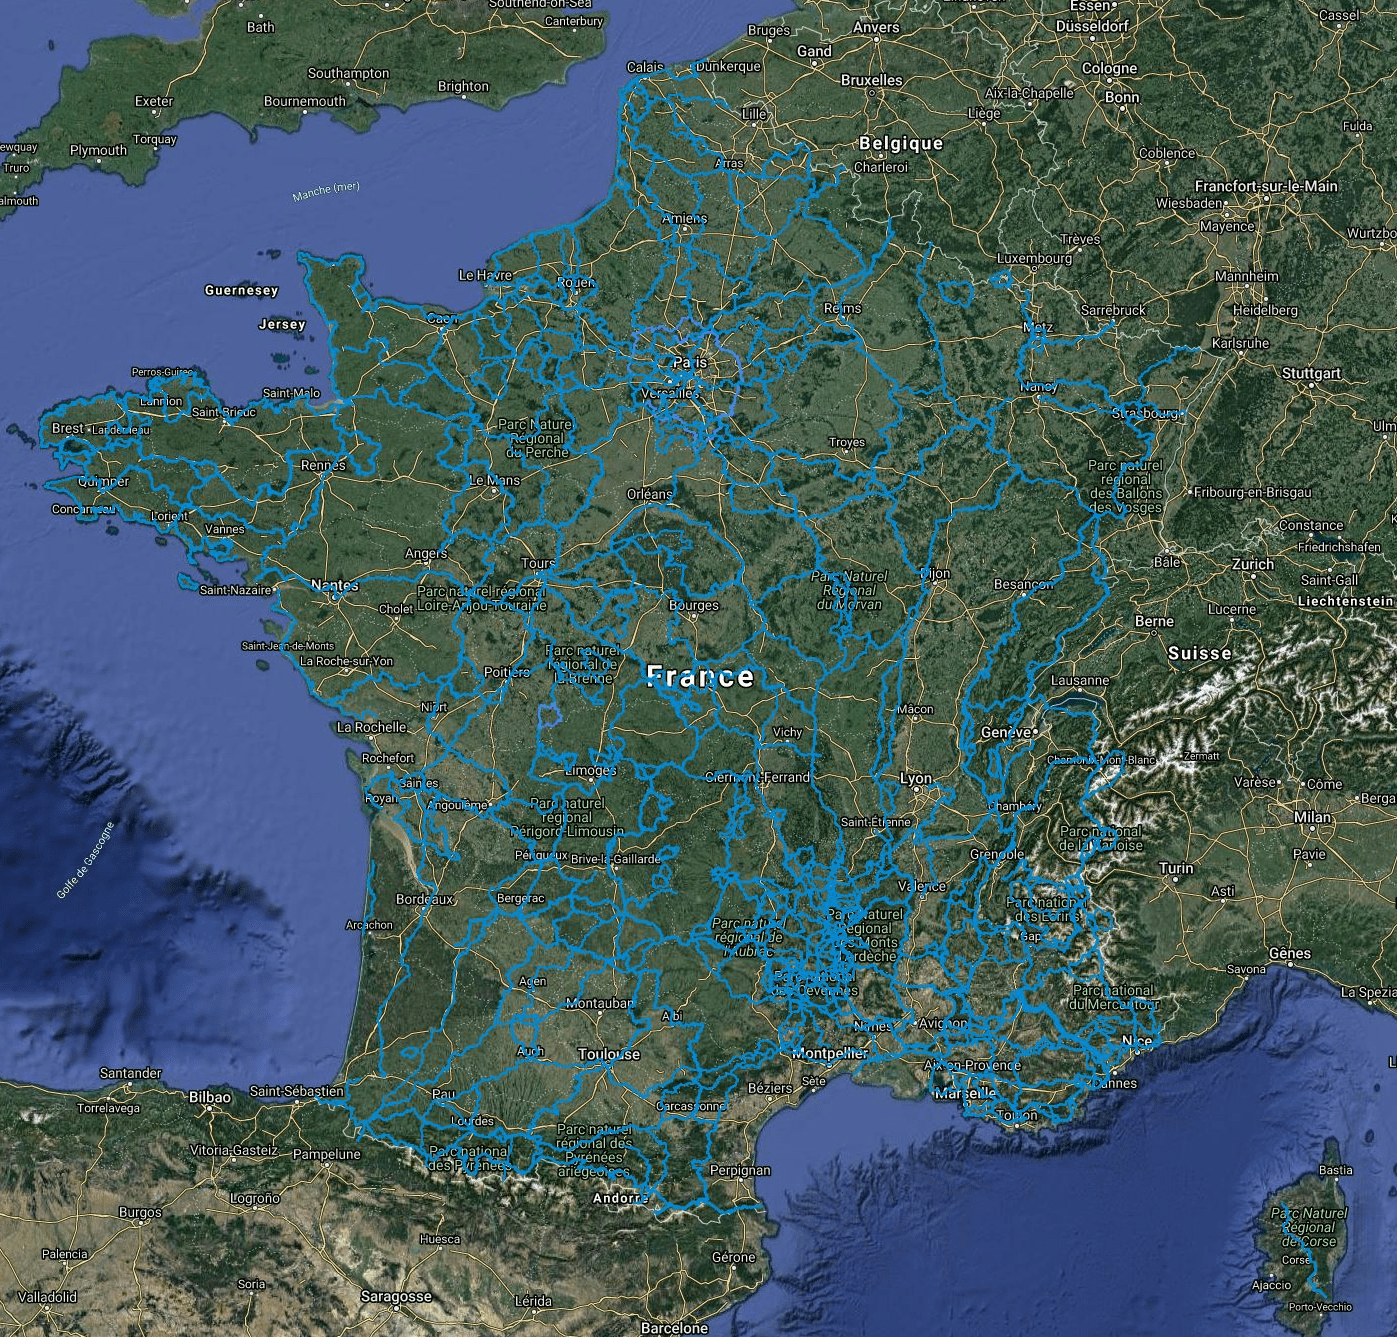 GR Long-distance hiking trails in France